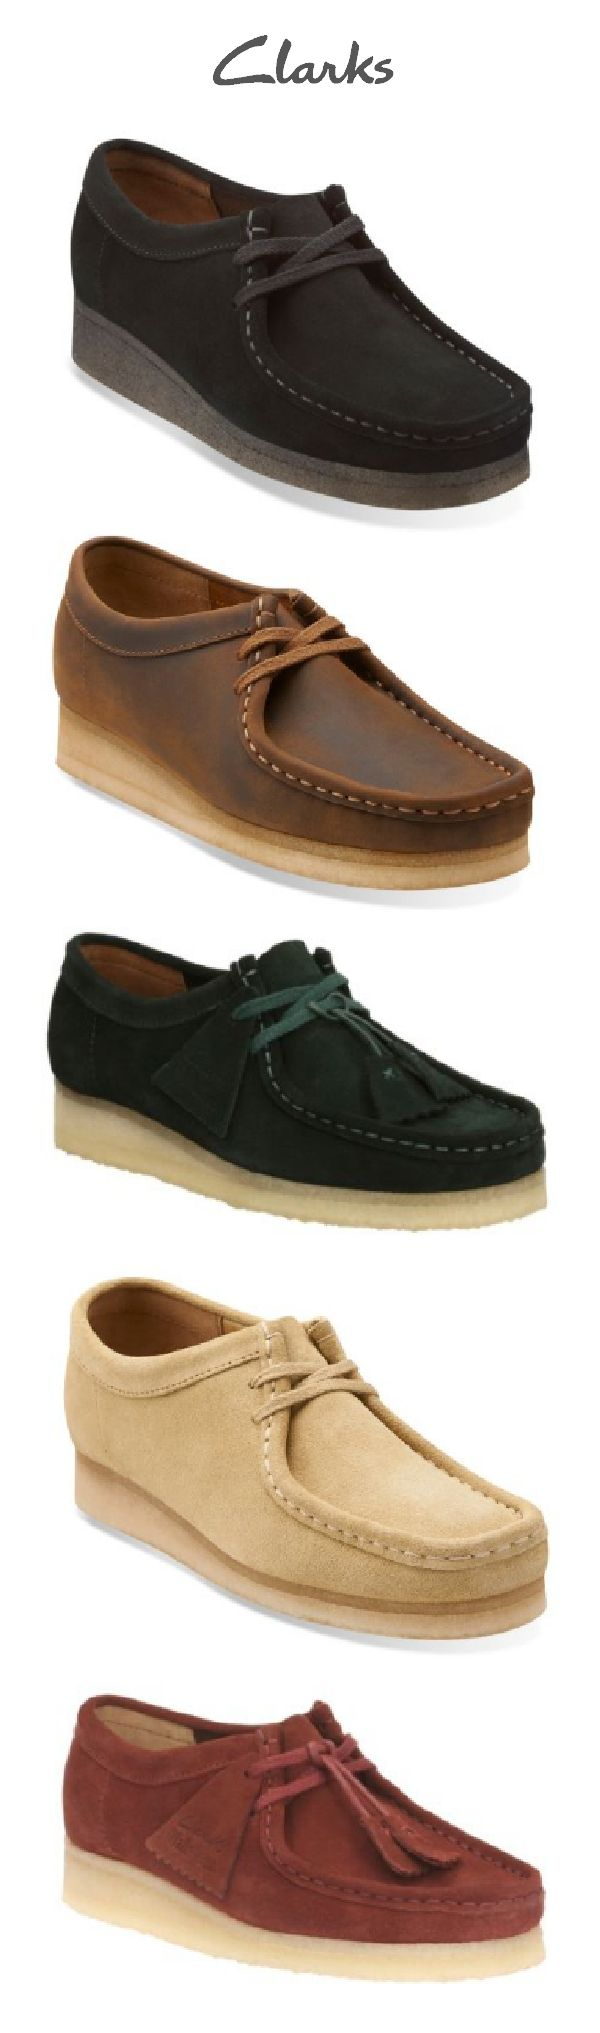 The Wallabee has become an iconic classic in the Clarks Originals® Collection and for good reason! The comfortable shoe is a structured take on a cozy moccasin and features clean and simple lines in a variety of suede and leather finishes. Choose your favorite version of this lace-up classic shoe and add it to your wardrobe wish list!